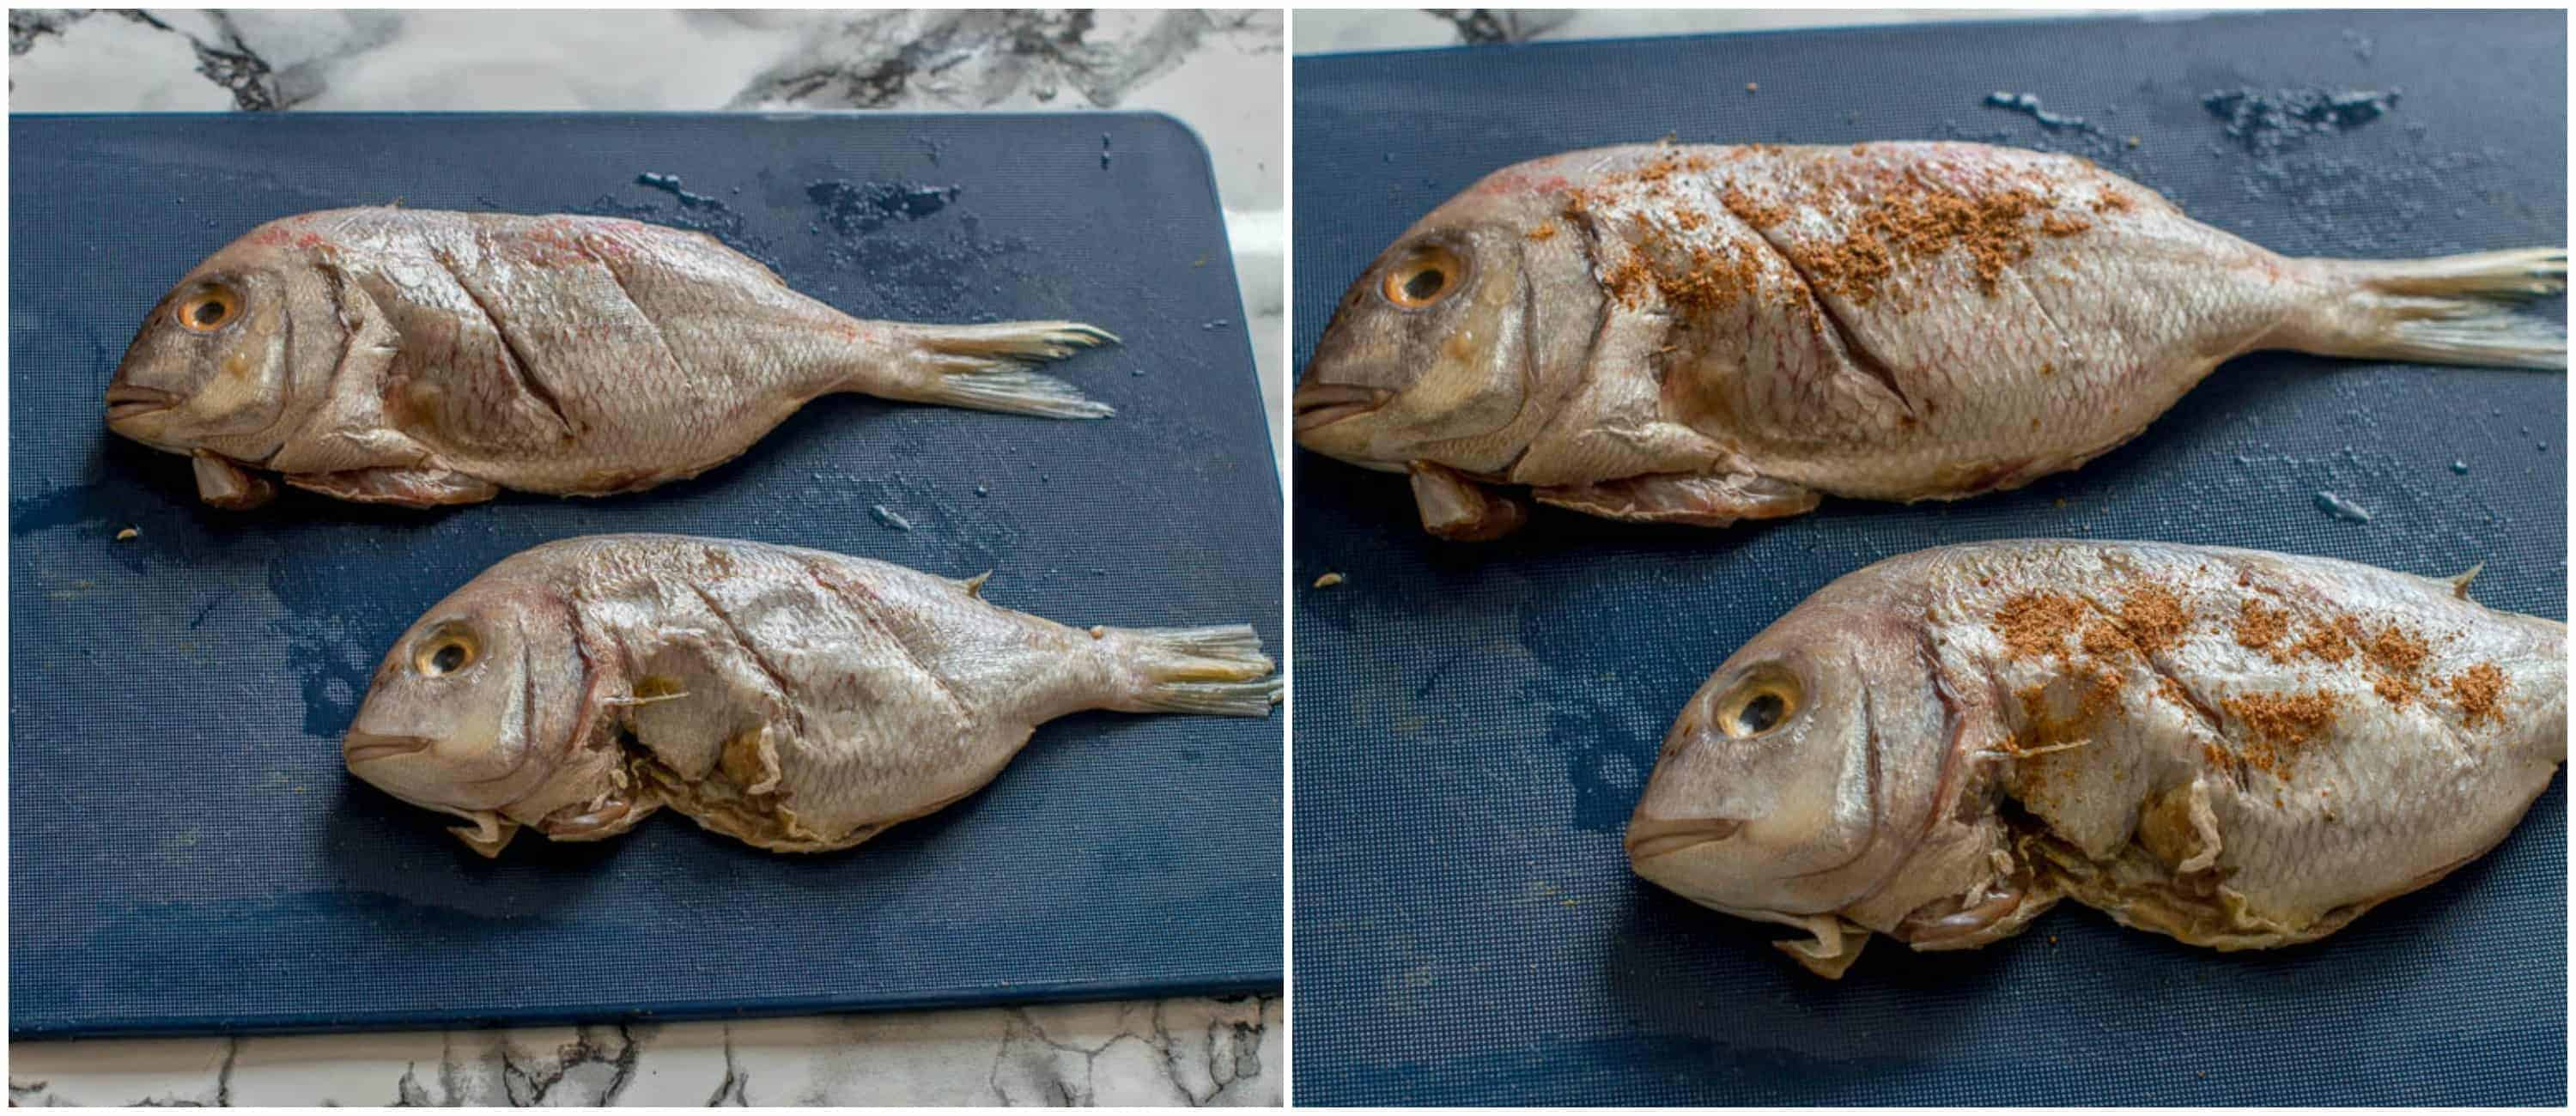 Escovitch fish steps 1-2